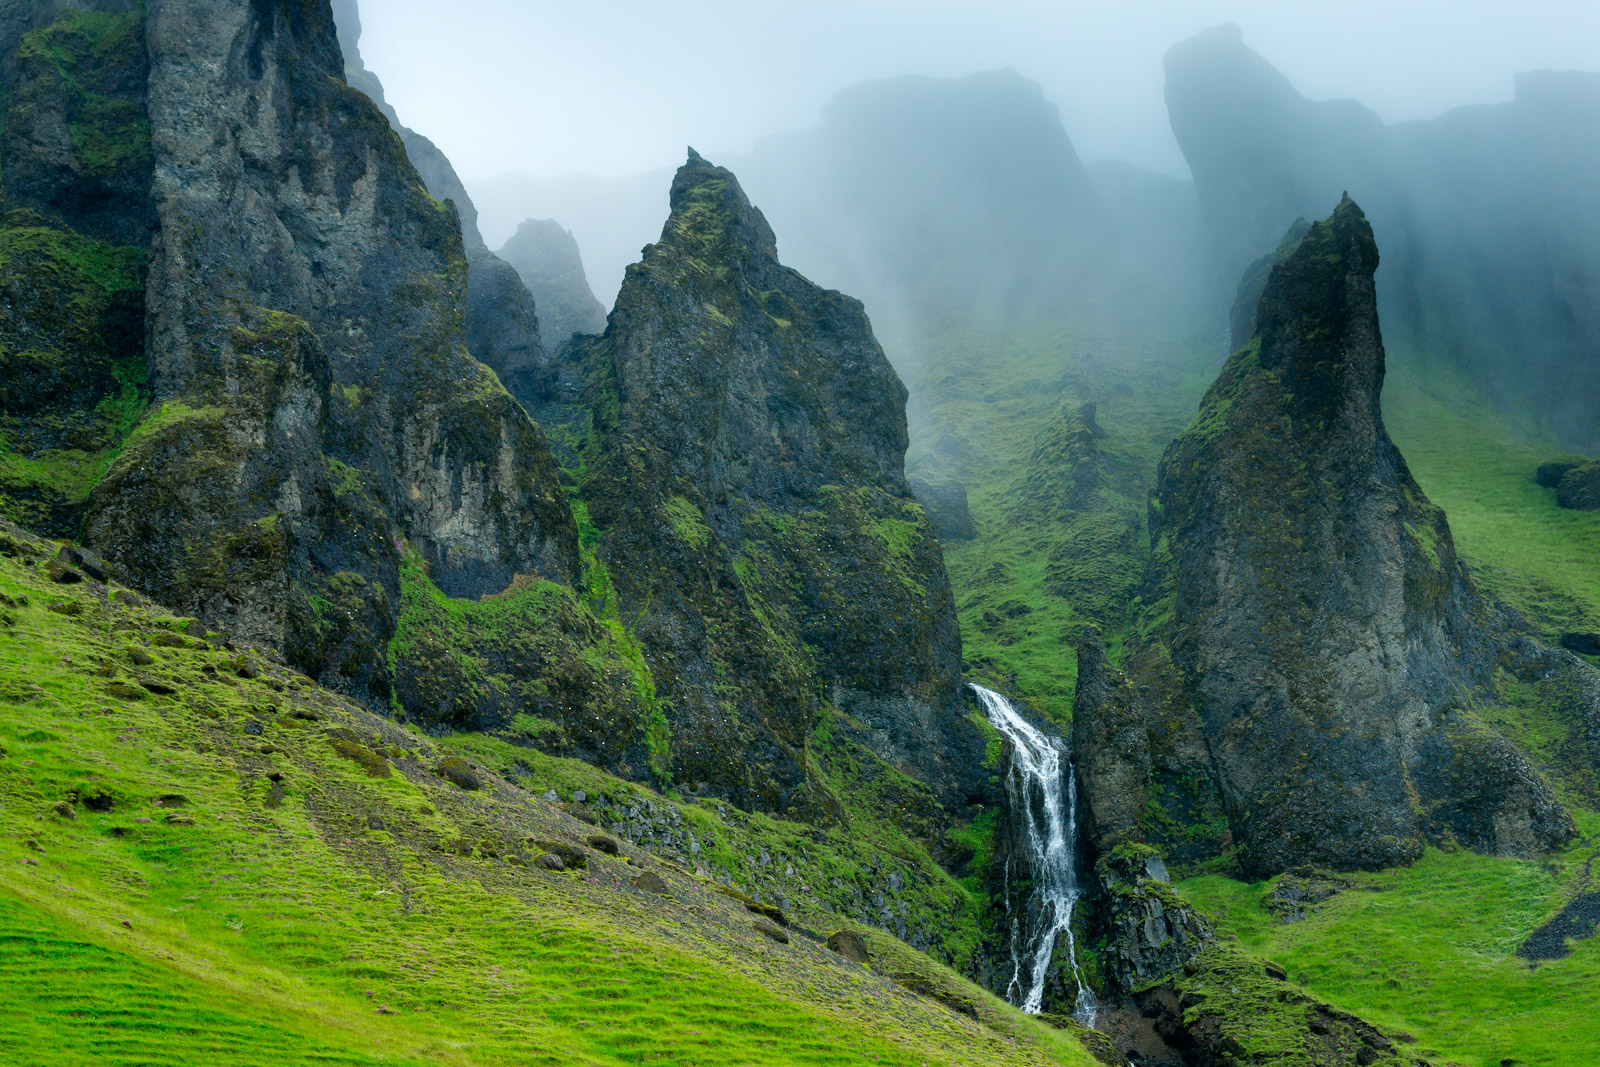 iceland, fog, nuppstadur, mountains, Craggy, Peaks, photo